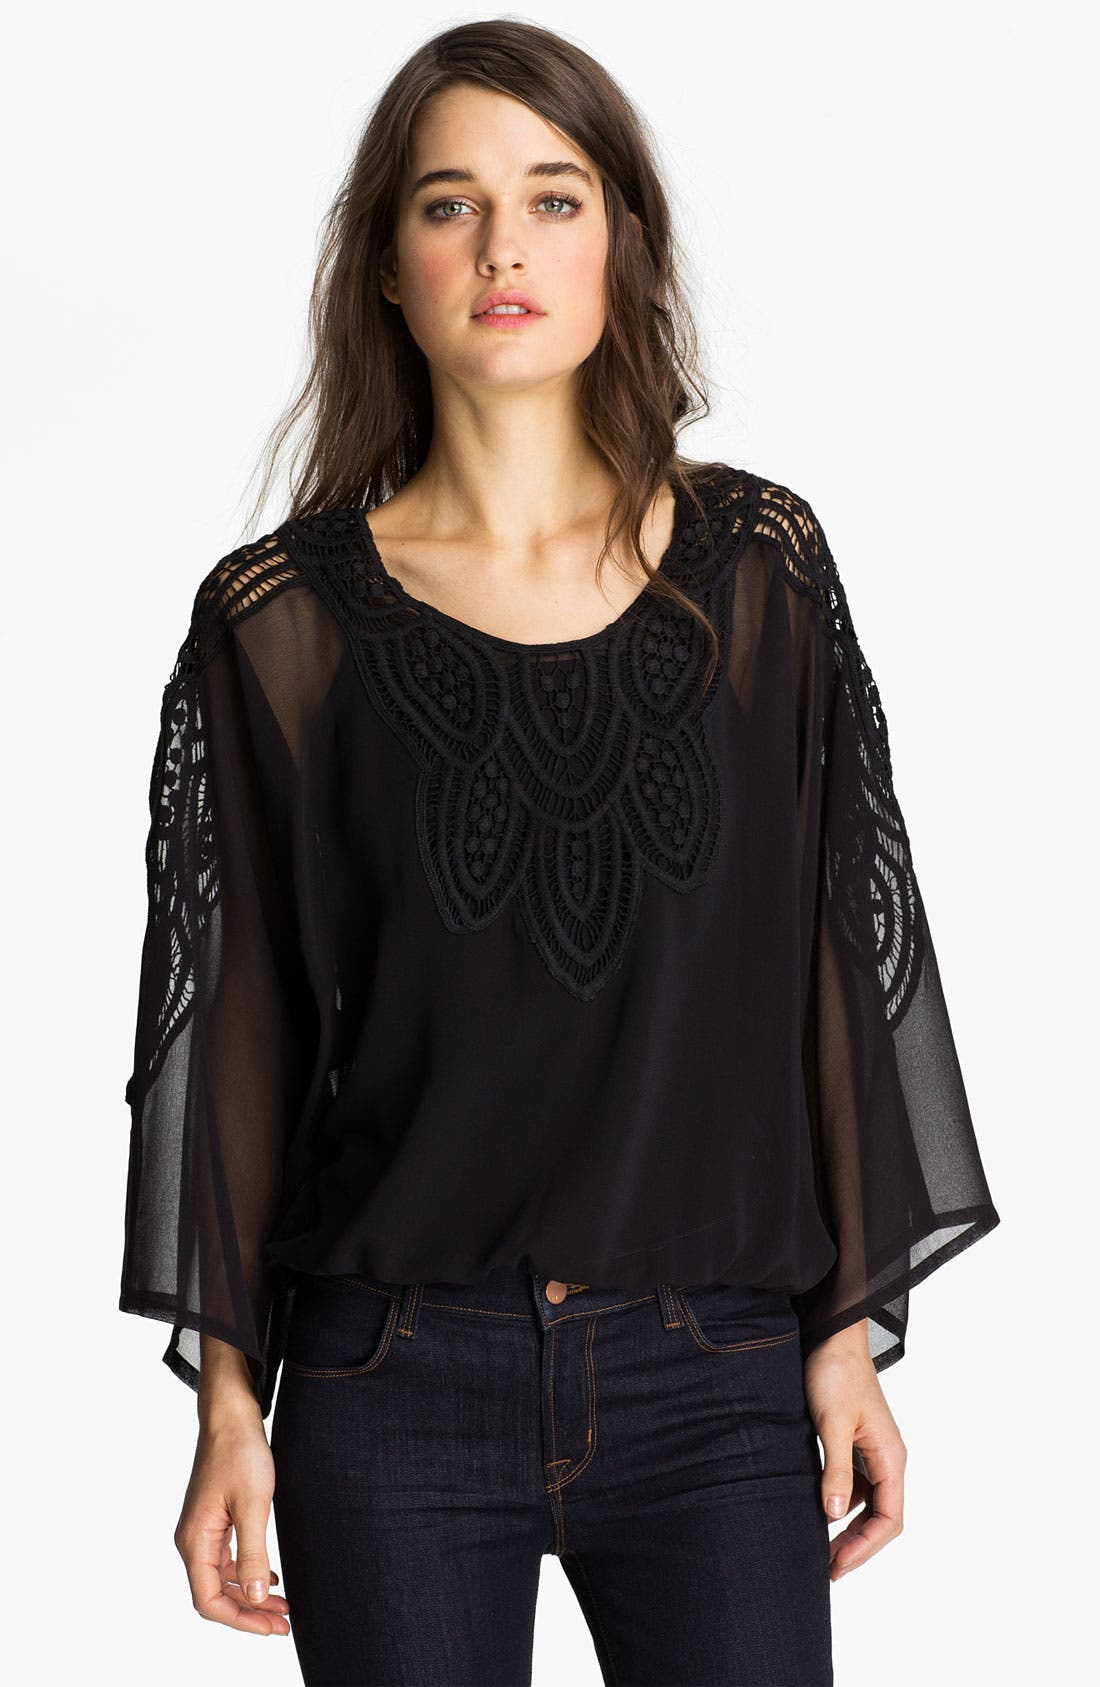 Alternate Image 1 Selected - Sanctuary 'Santa Fe Nights' Crochet Chiffon Top